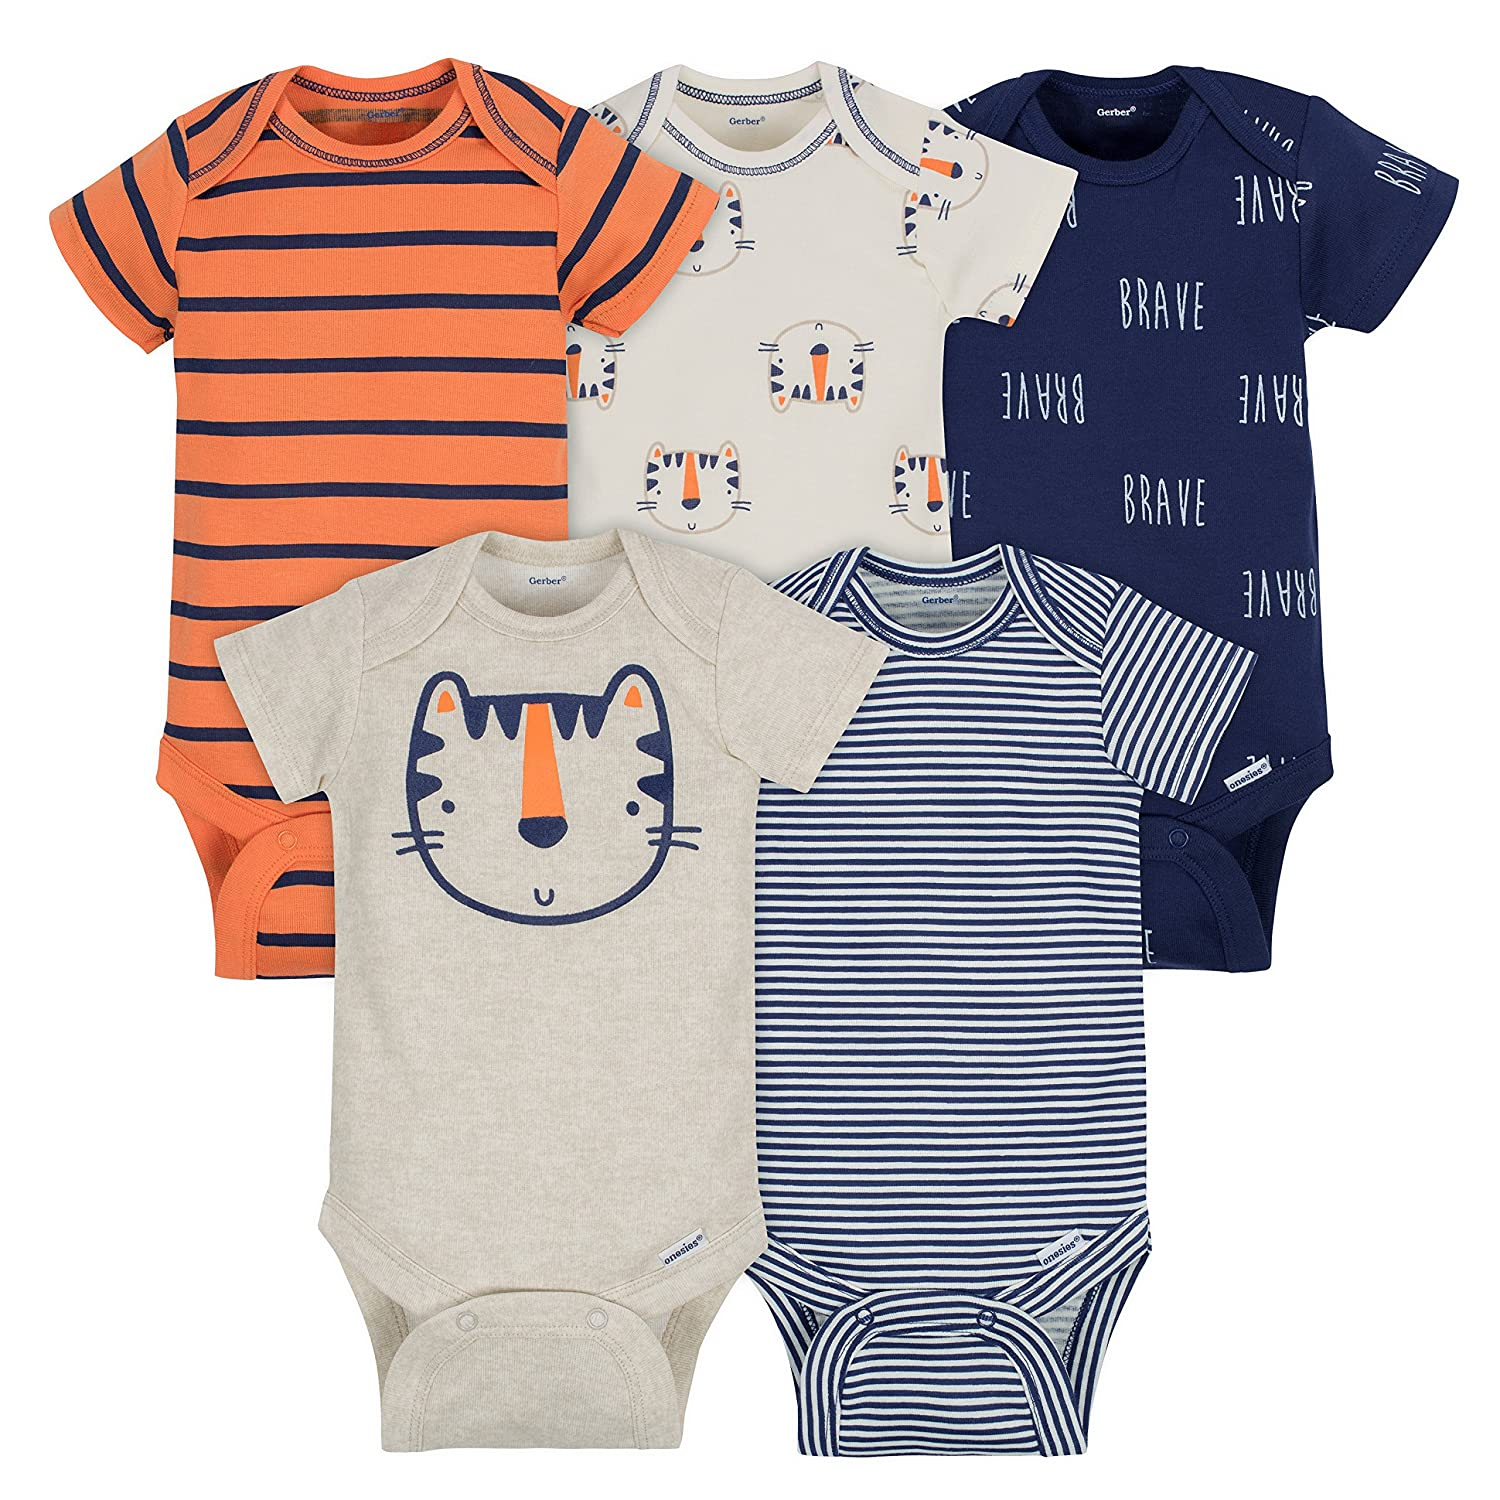 GerberユニセックスベビーOnesies (Pack 0 of 5 ) Months|Tigers B07FJZYVNG 3 Tigers 0 - 3 Months 0 - 3 Months|Tigers, ミサキマチ:9891e14e --- itxassou.fr